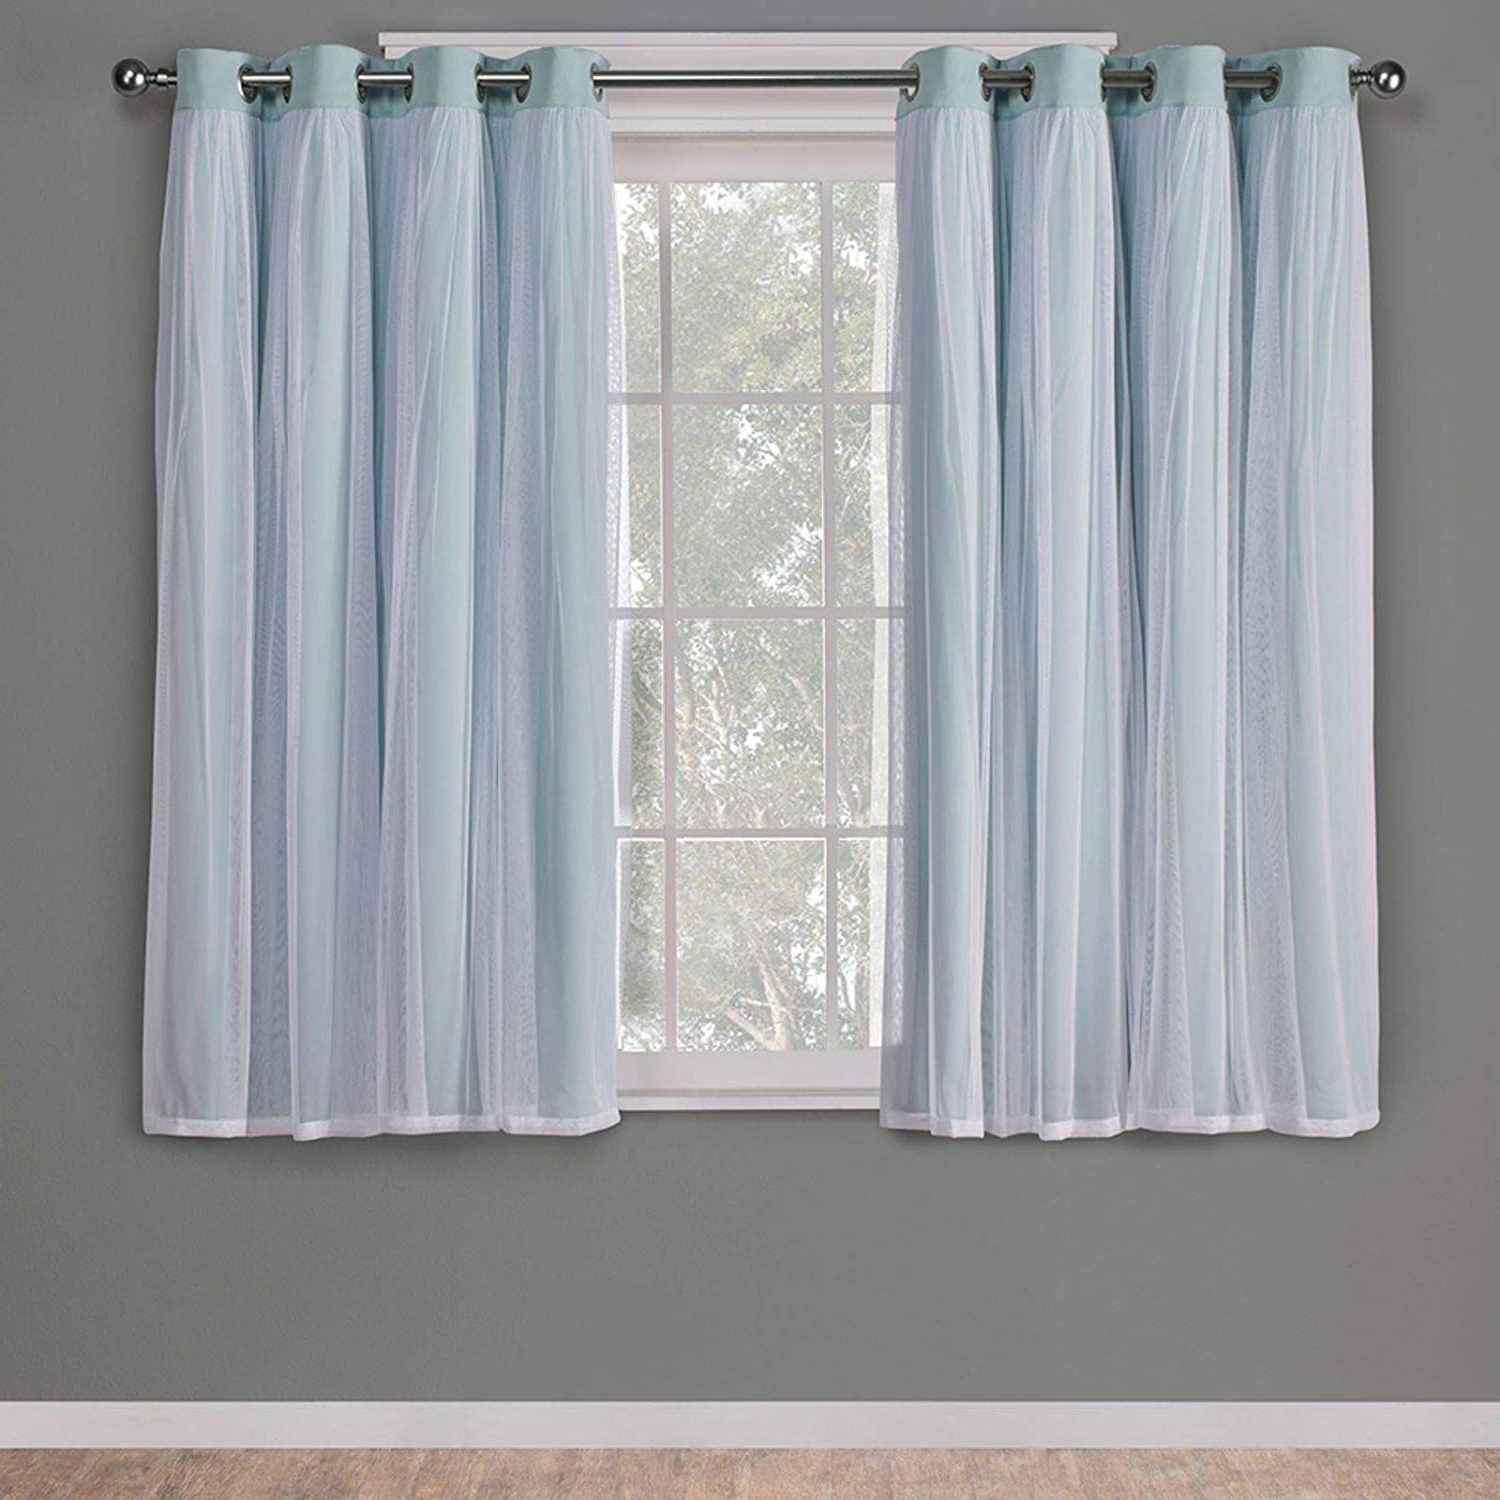 Solid Grommet Top Curtain Panel Pairs Pertaining To Trendy Exclusive Home Curtains Catarina Layered Solid Blackout And Sheer Window Curtain Panel Pair With Grommet Top, 52x63, Aqua, 2 Piece (View 3 of 20)